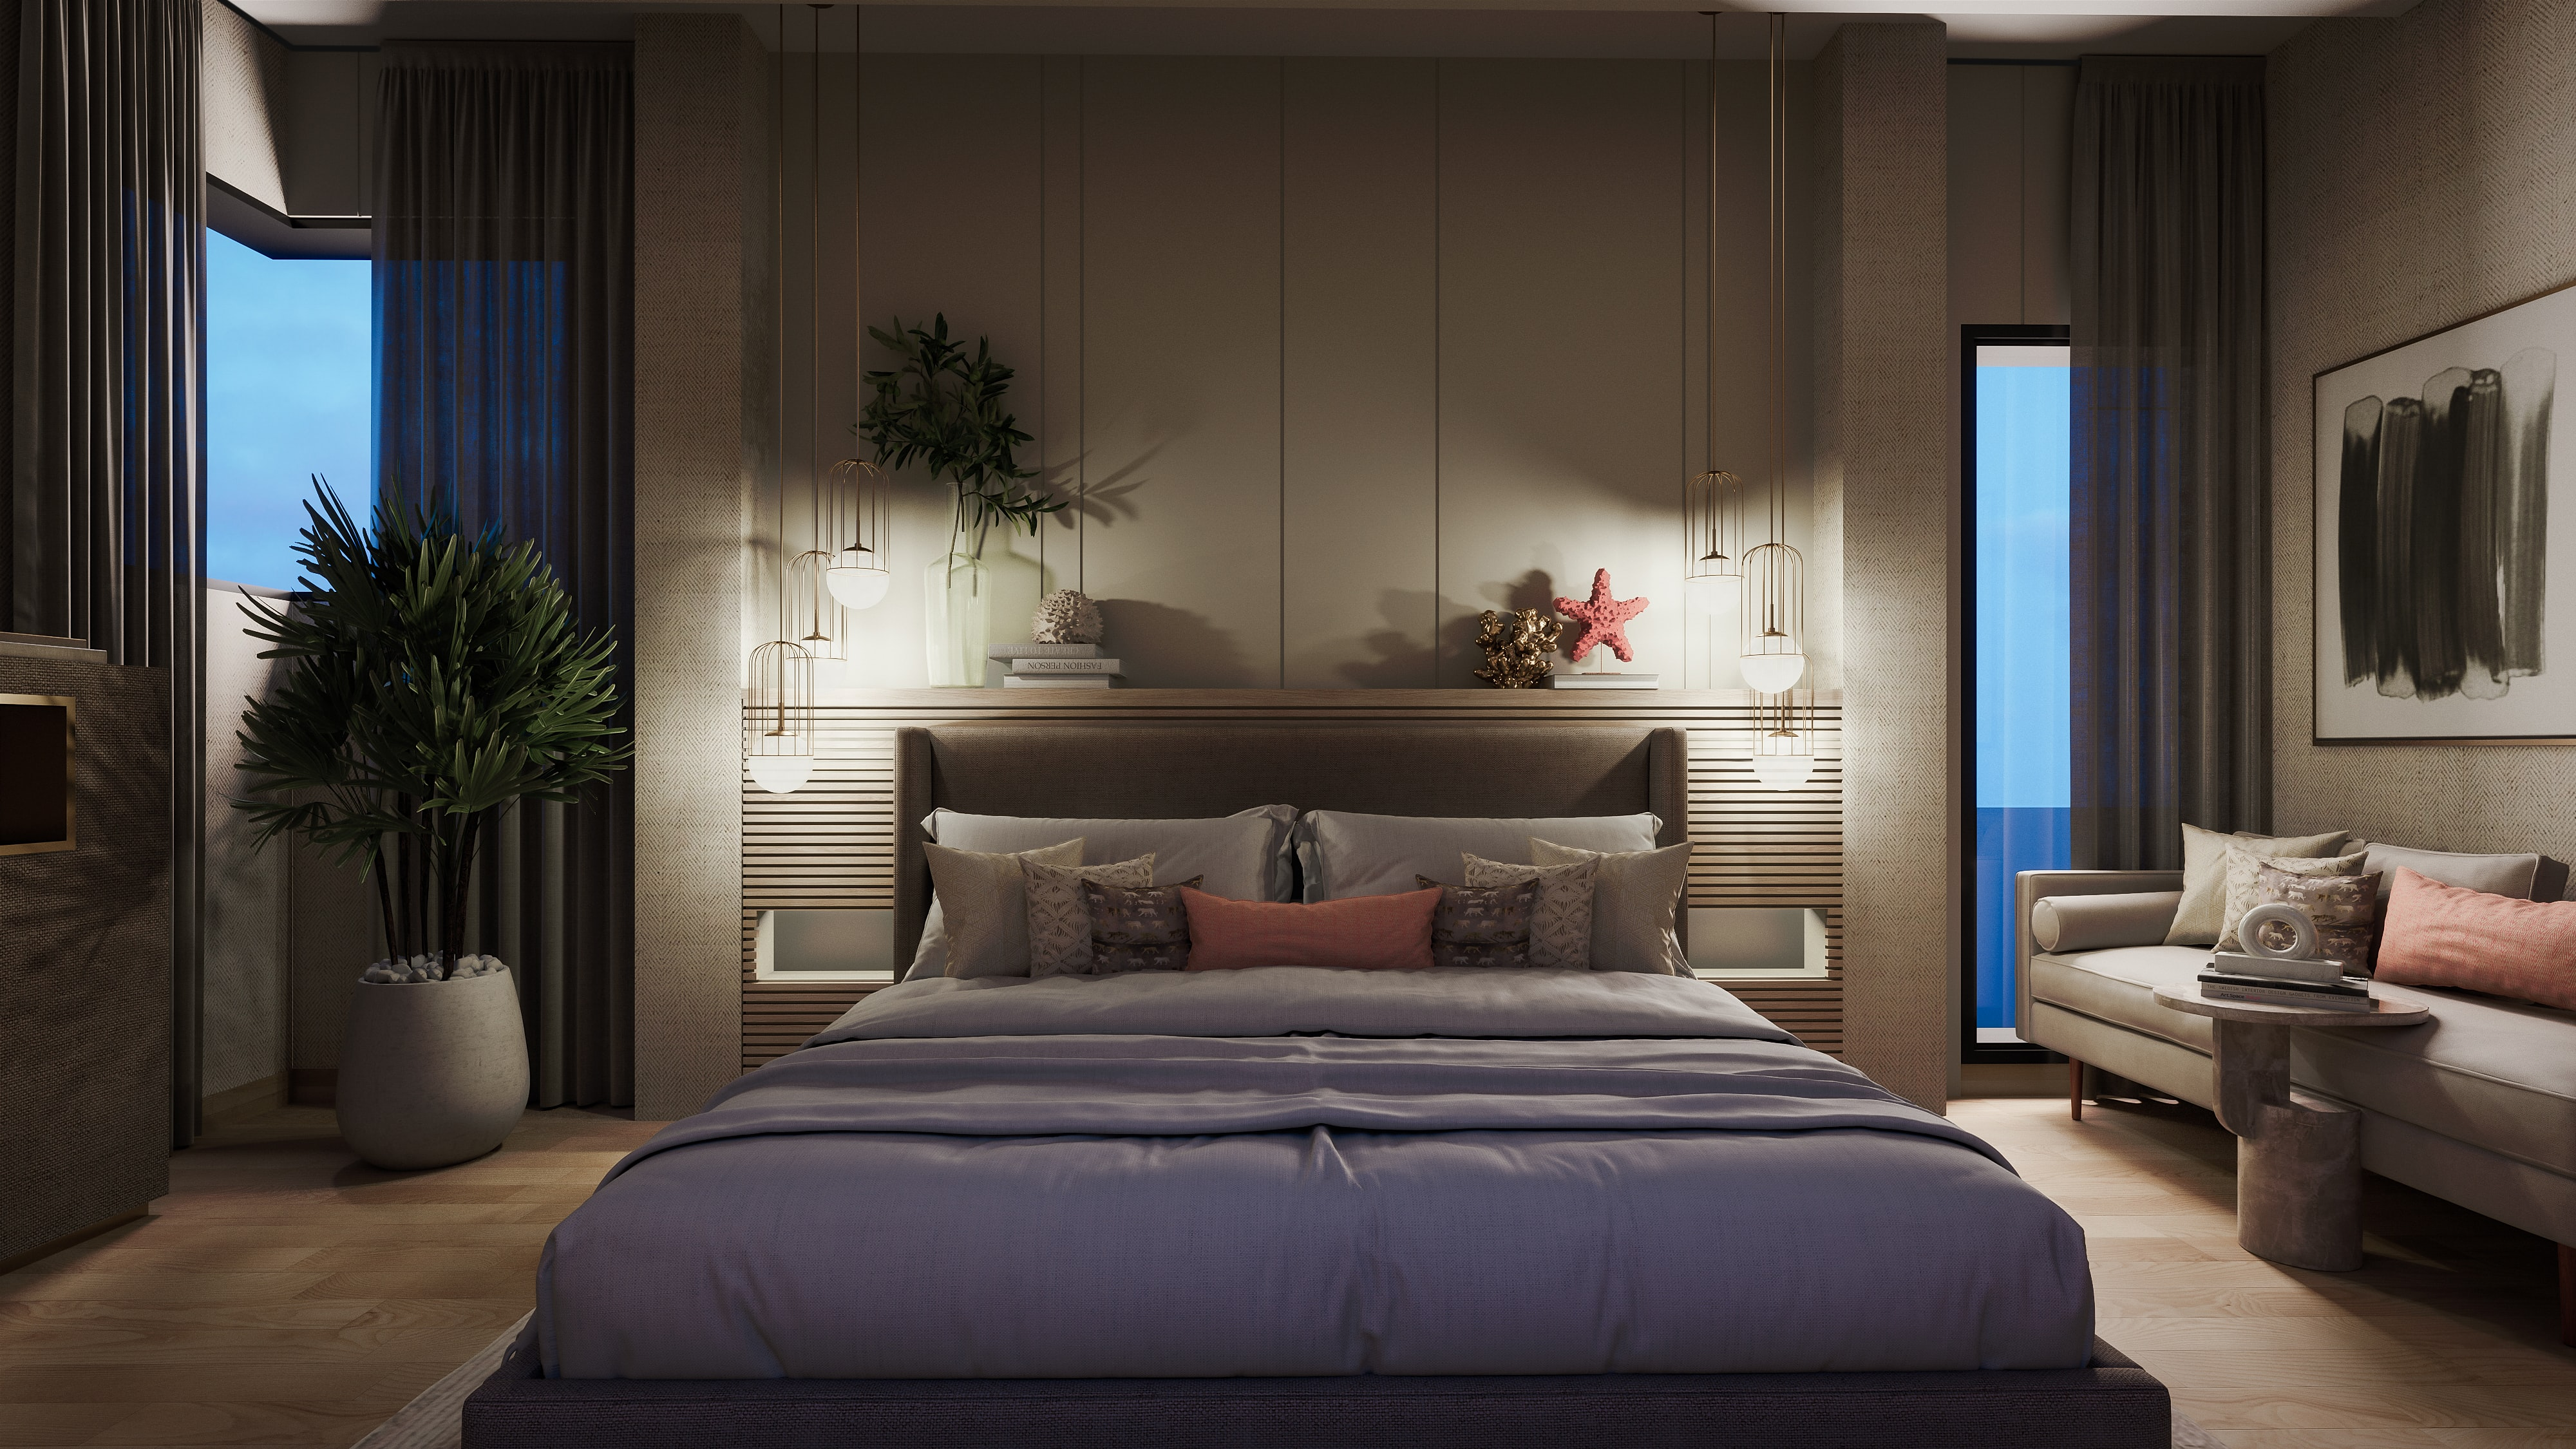 Design Your Ideal Bedroom And We'll Reveal Your Age